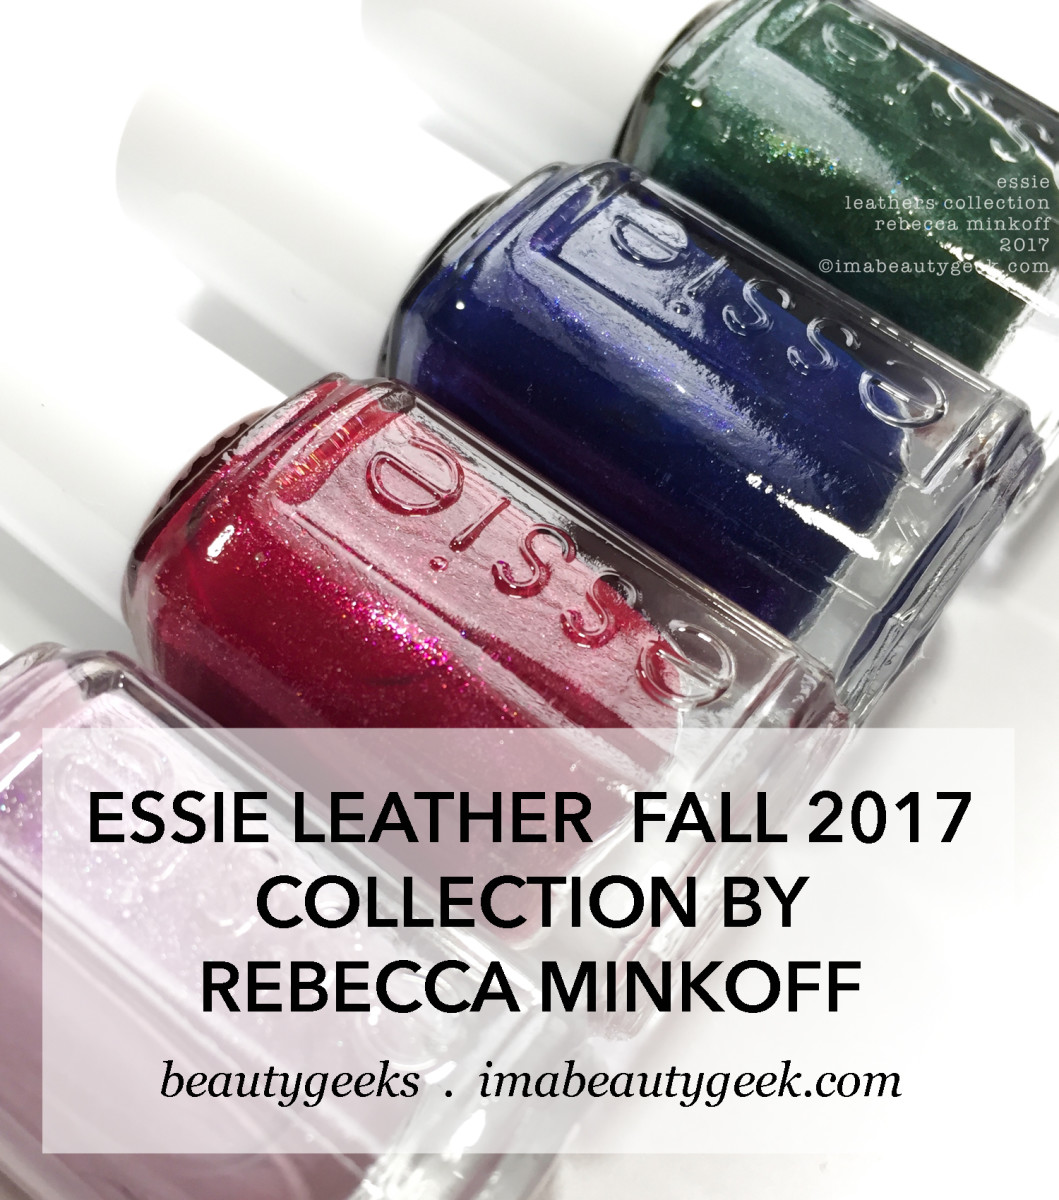 Essie Leathers Collection Rebecca Minkoff 2017 swatches and review